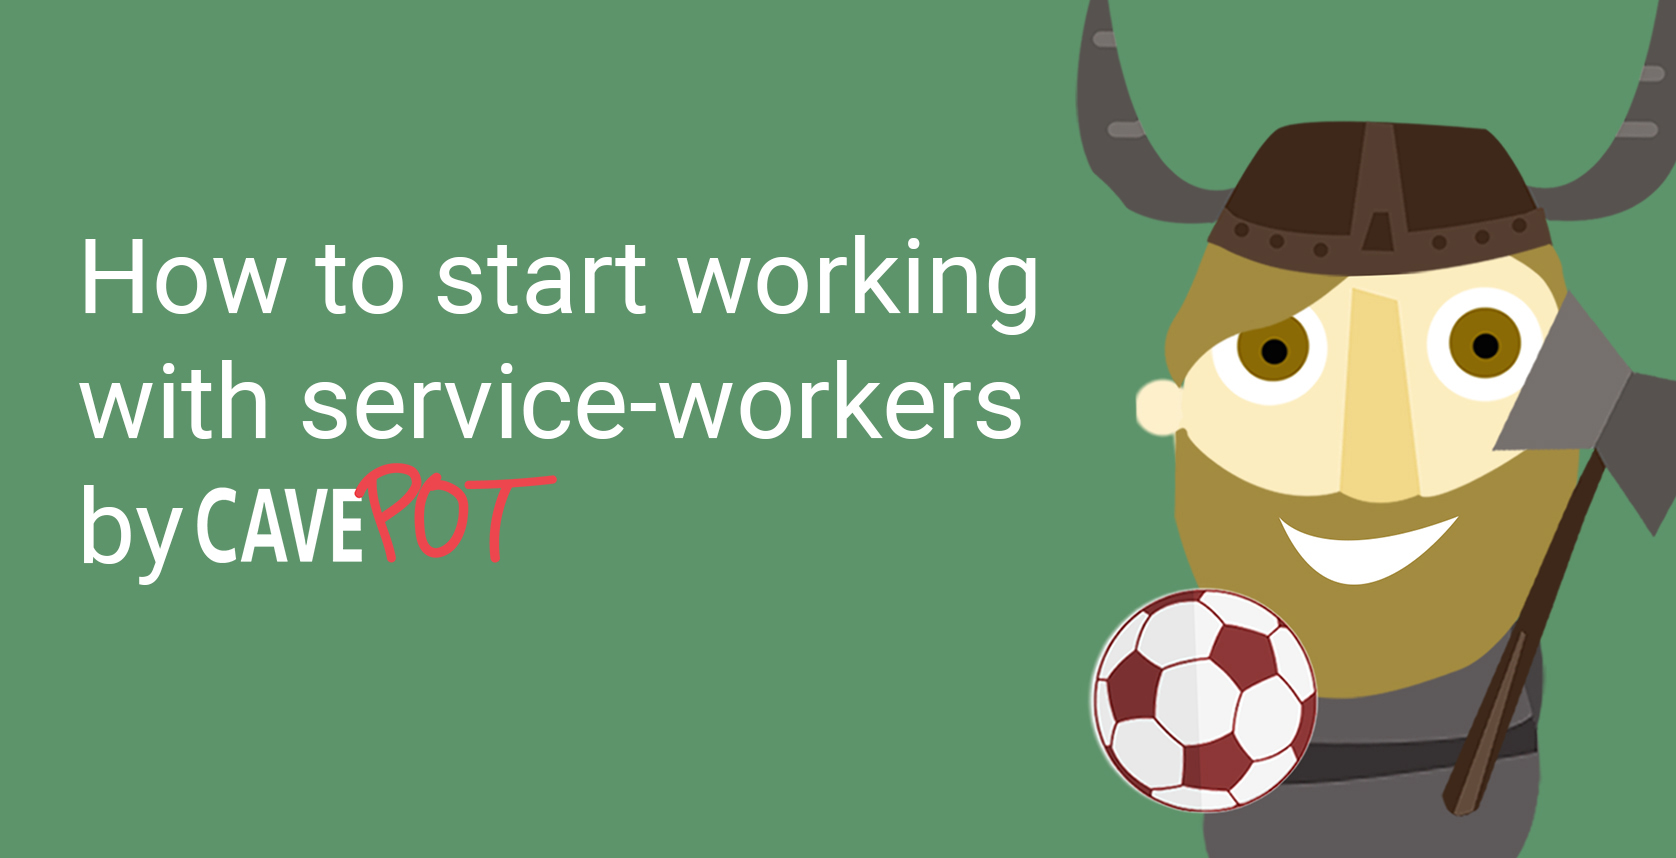 Start working with service-workers - Cavepot blog